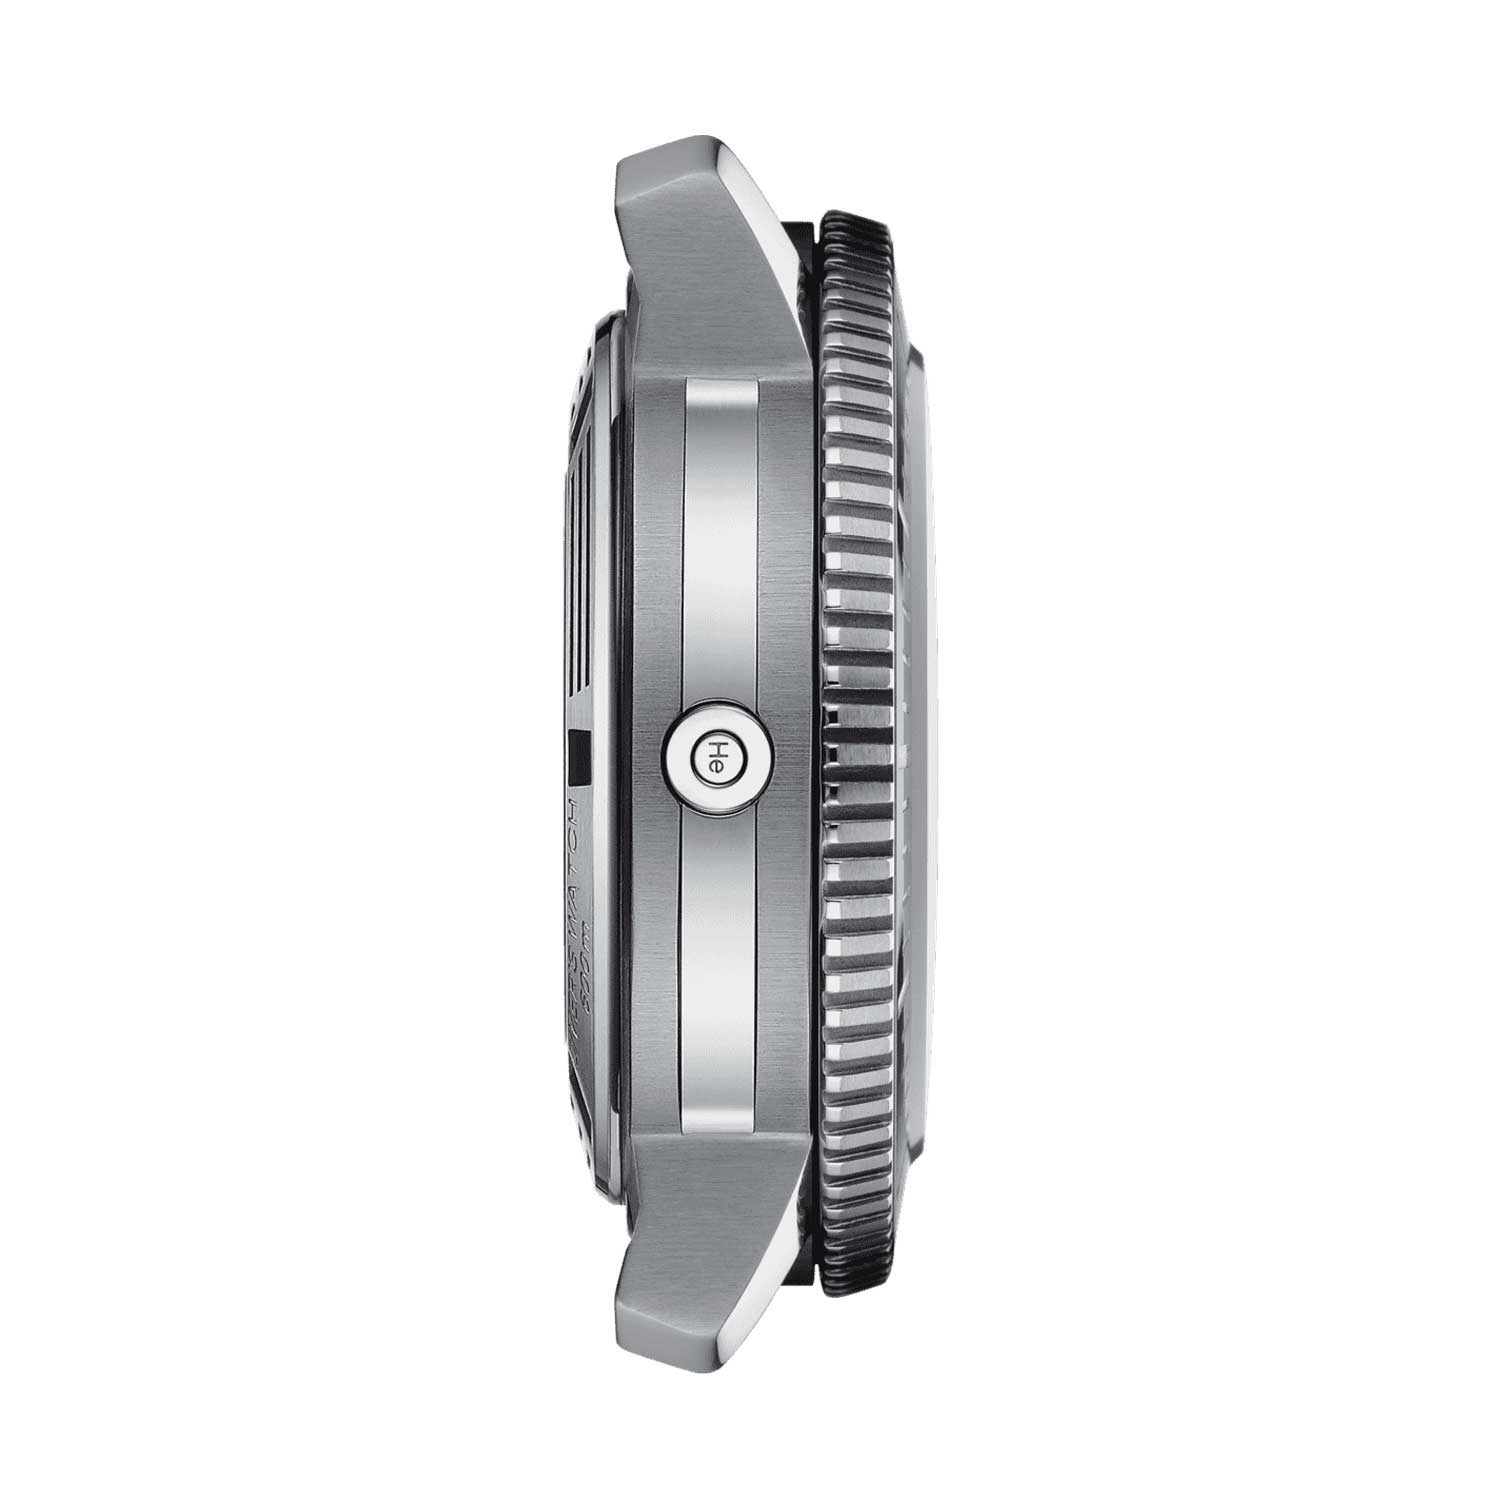 The watch also has a helium valve to release the build up of gas and protect the integrity of the watch.